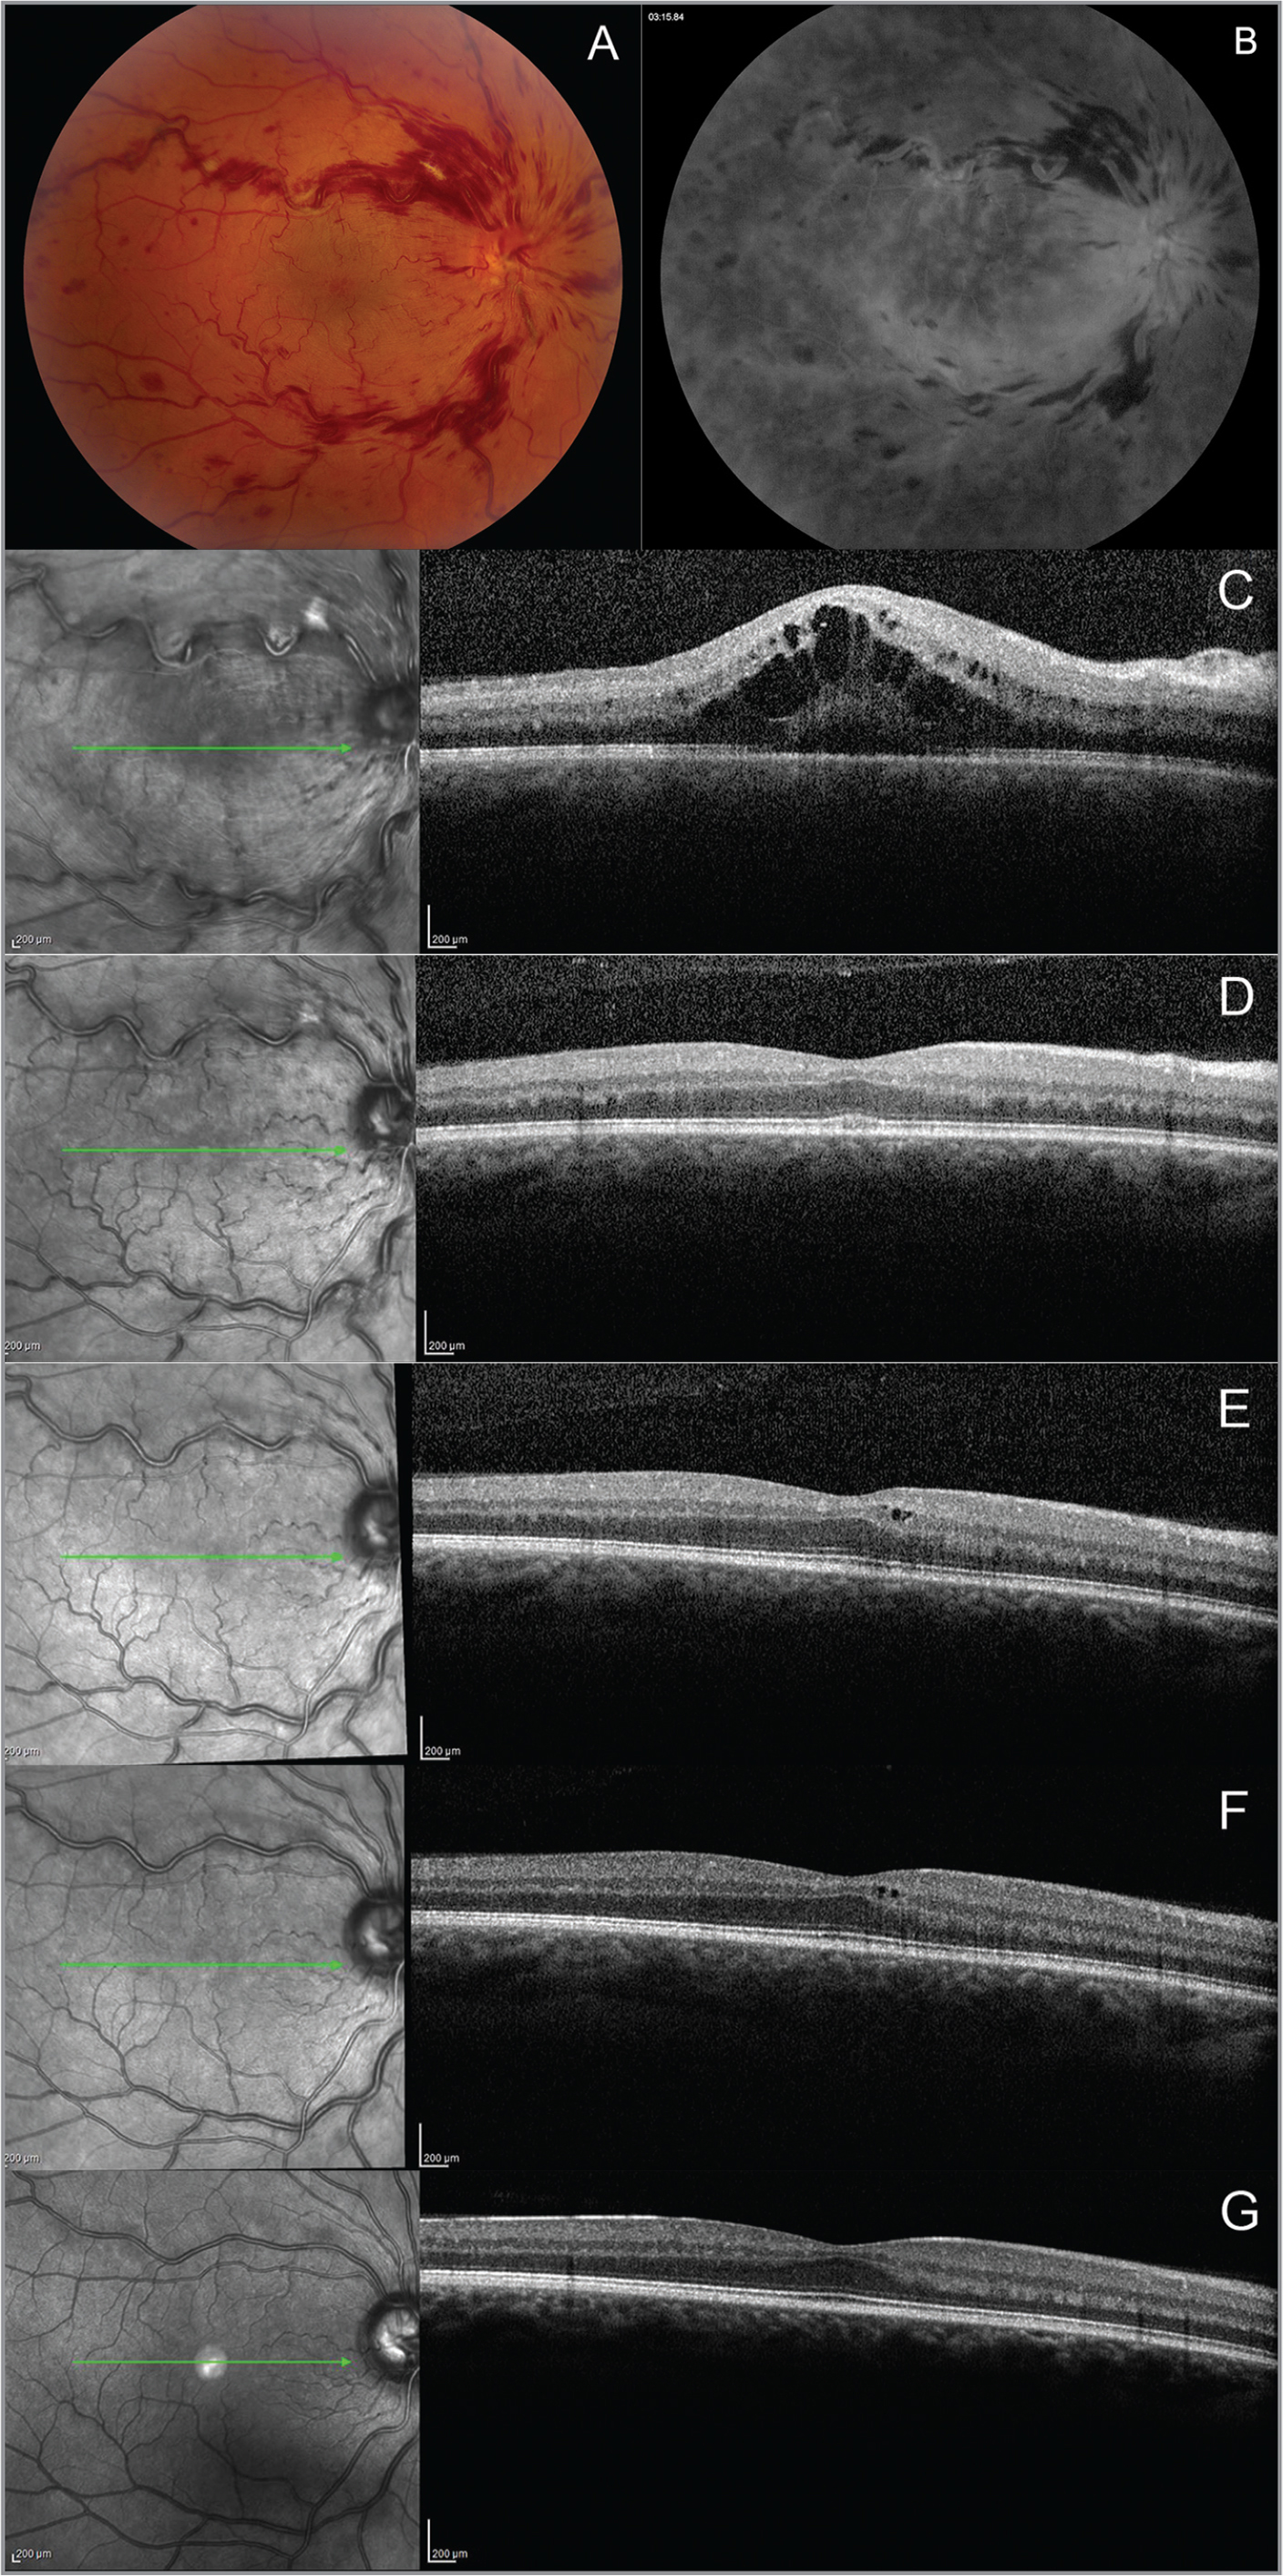 A representative case in a young patient with central retinal vein occlusion (CRVO) with anti-vascular endothelial growth factor treatment. (A) Color photography demonstrates CRVO changes in a treatment-naïve 31-year-old male patient (Case 13), with engorged retinal veins, extensive retinal hemorrhages, and macular edema. (B) Fluorescein angiography shows staining along the large retinal veins, with hypofluorescence due to masking by retinal hemorrhages. (C) Baseline optical coherence tomography (OCT) reveals macular edema before treatment, with intraretinal and subretinal fluid. (D to G) OCT images demonstrate resolution of macular edema and decreased central retinal thickness at 1-month, 3-month, 6-month, and 12-month follow-up visits following intravitreal ranibizumab injections.